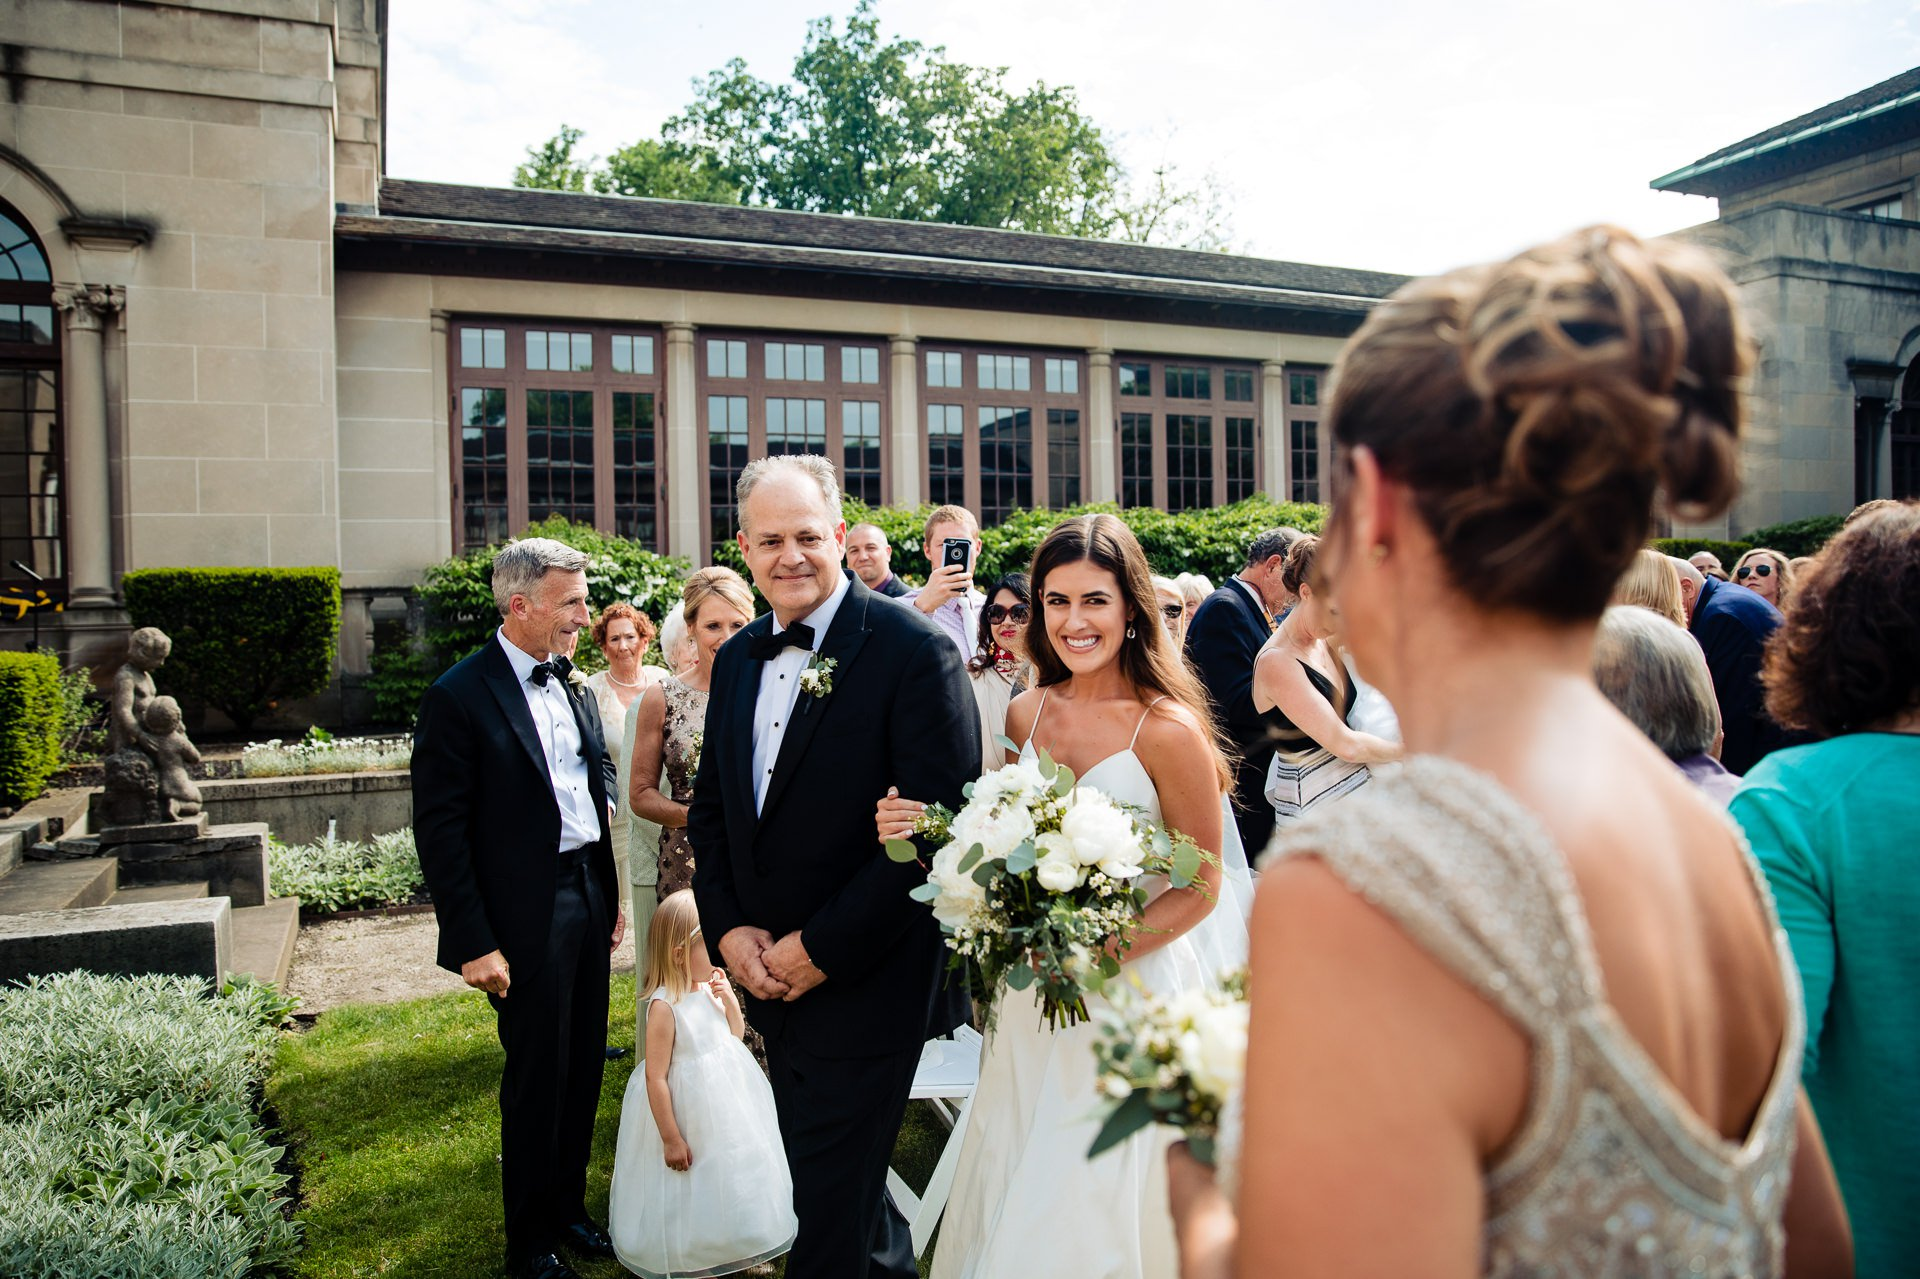 Cleveland Histroy Center Wedding Photographer at WRHS 36.jpg